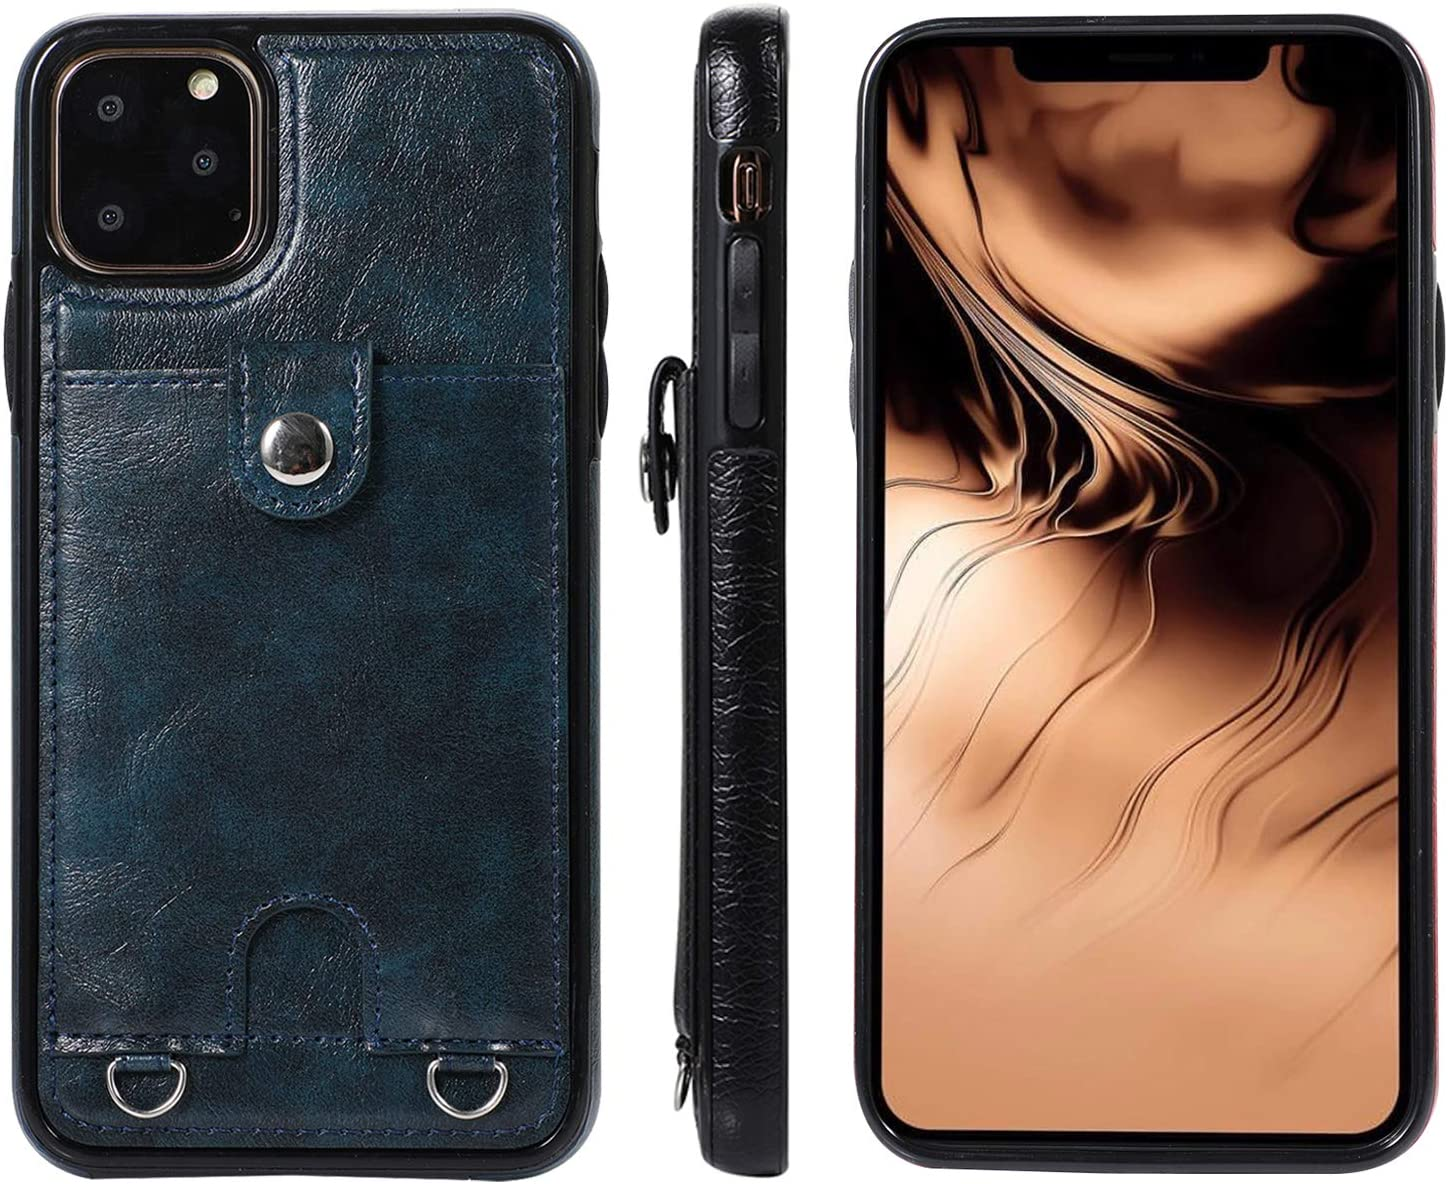 Jaorty PU Leather Wallet Case for iPhone Xs Max Necklace Lanyard Case Cover with Card Holder Adjustable Detachable Anti-Lost Neck Strap for Apple iPhone Xs Max,Blue